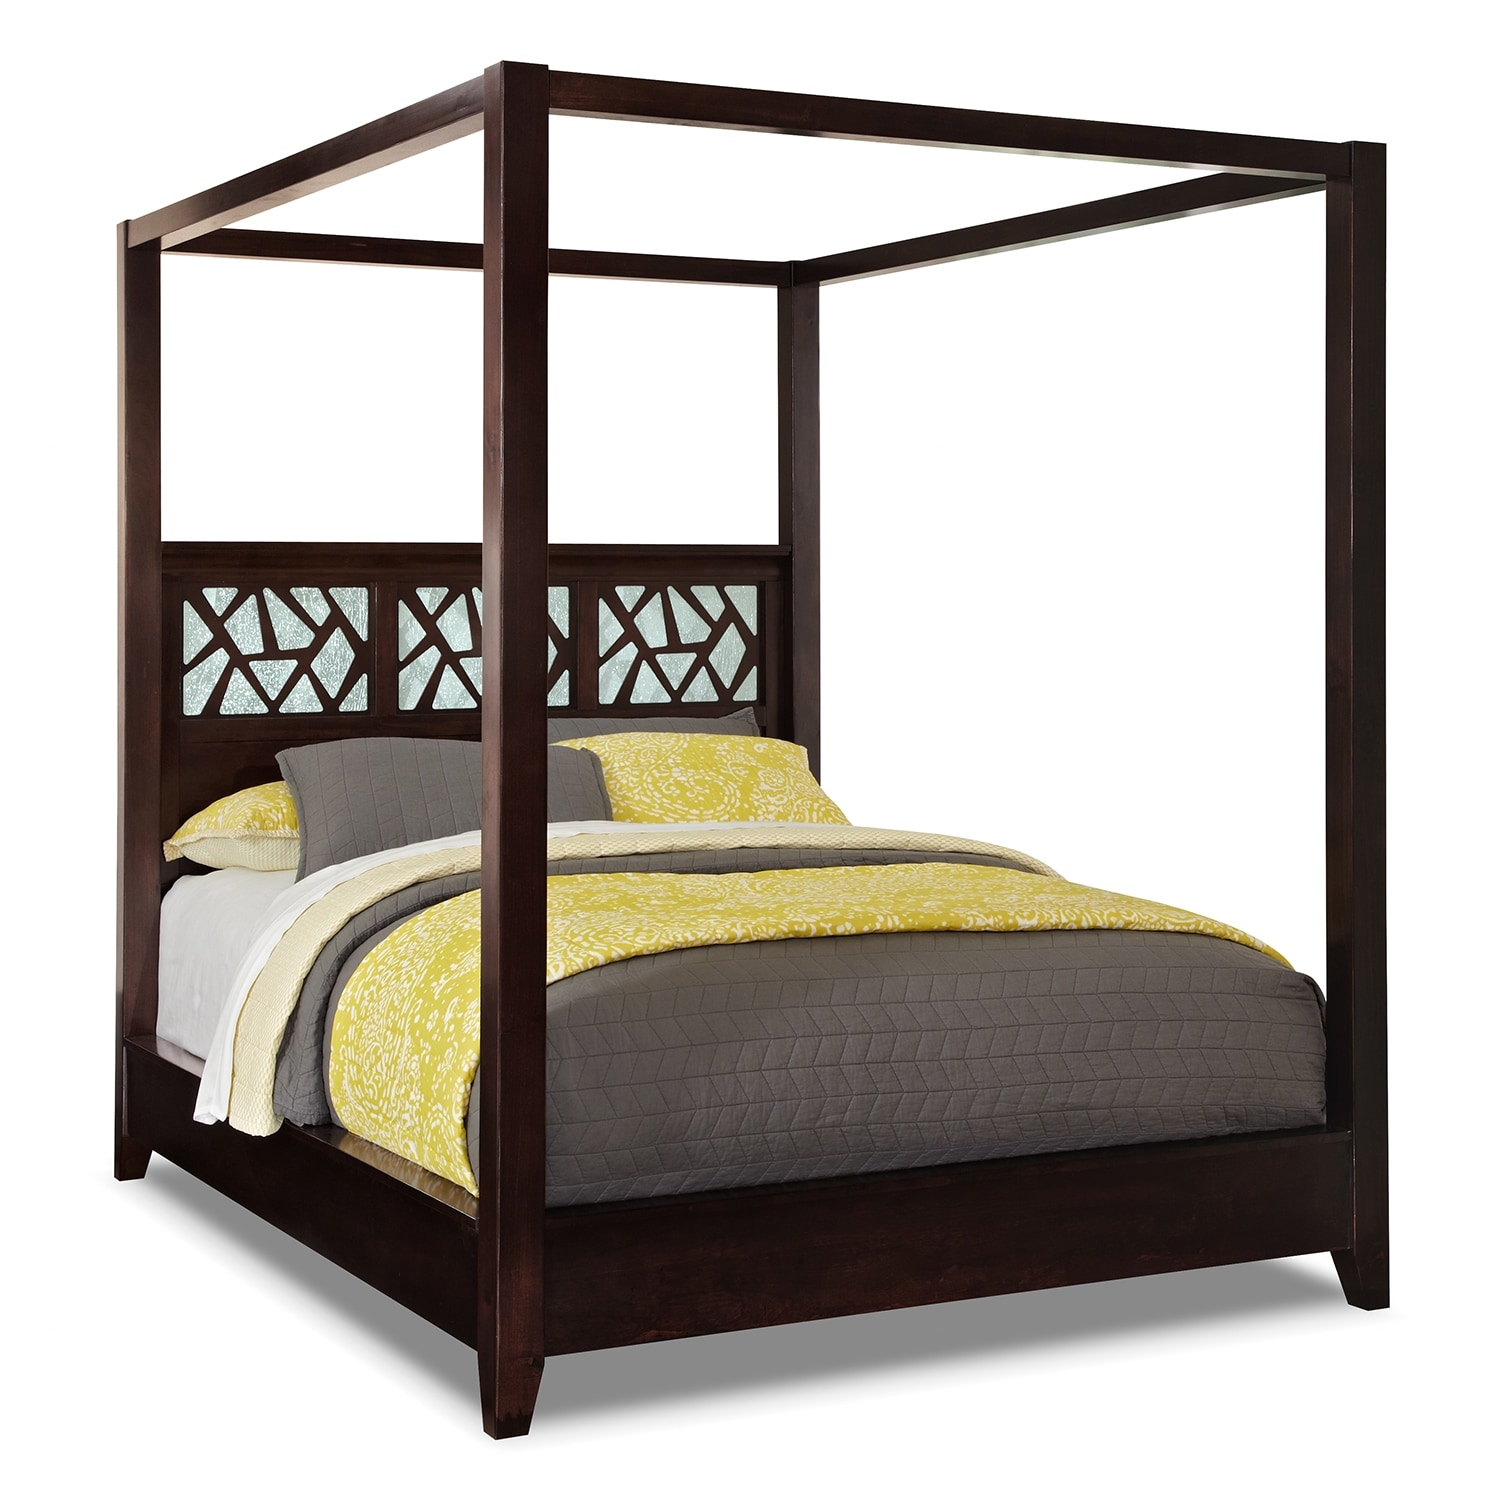 Queen Canopy Bed: Coming Soon [www.furniture.com]